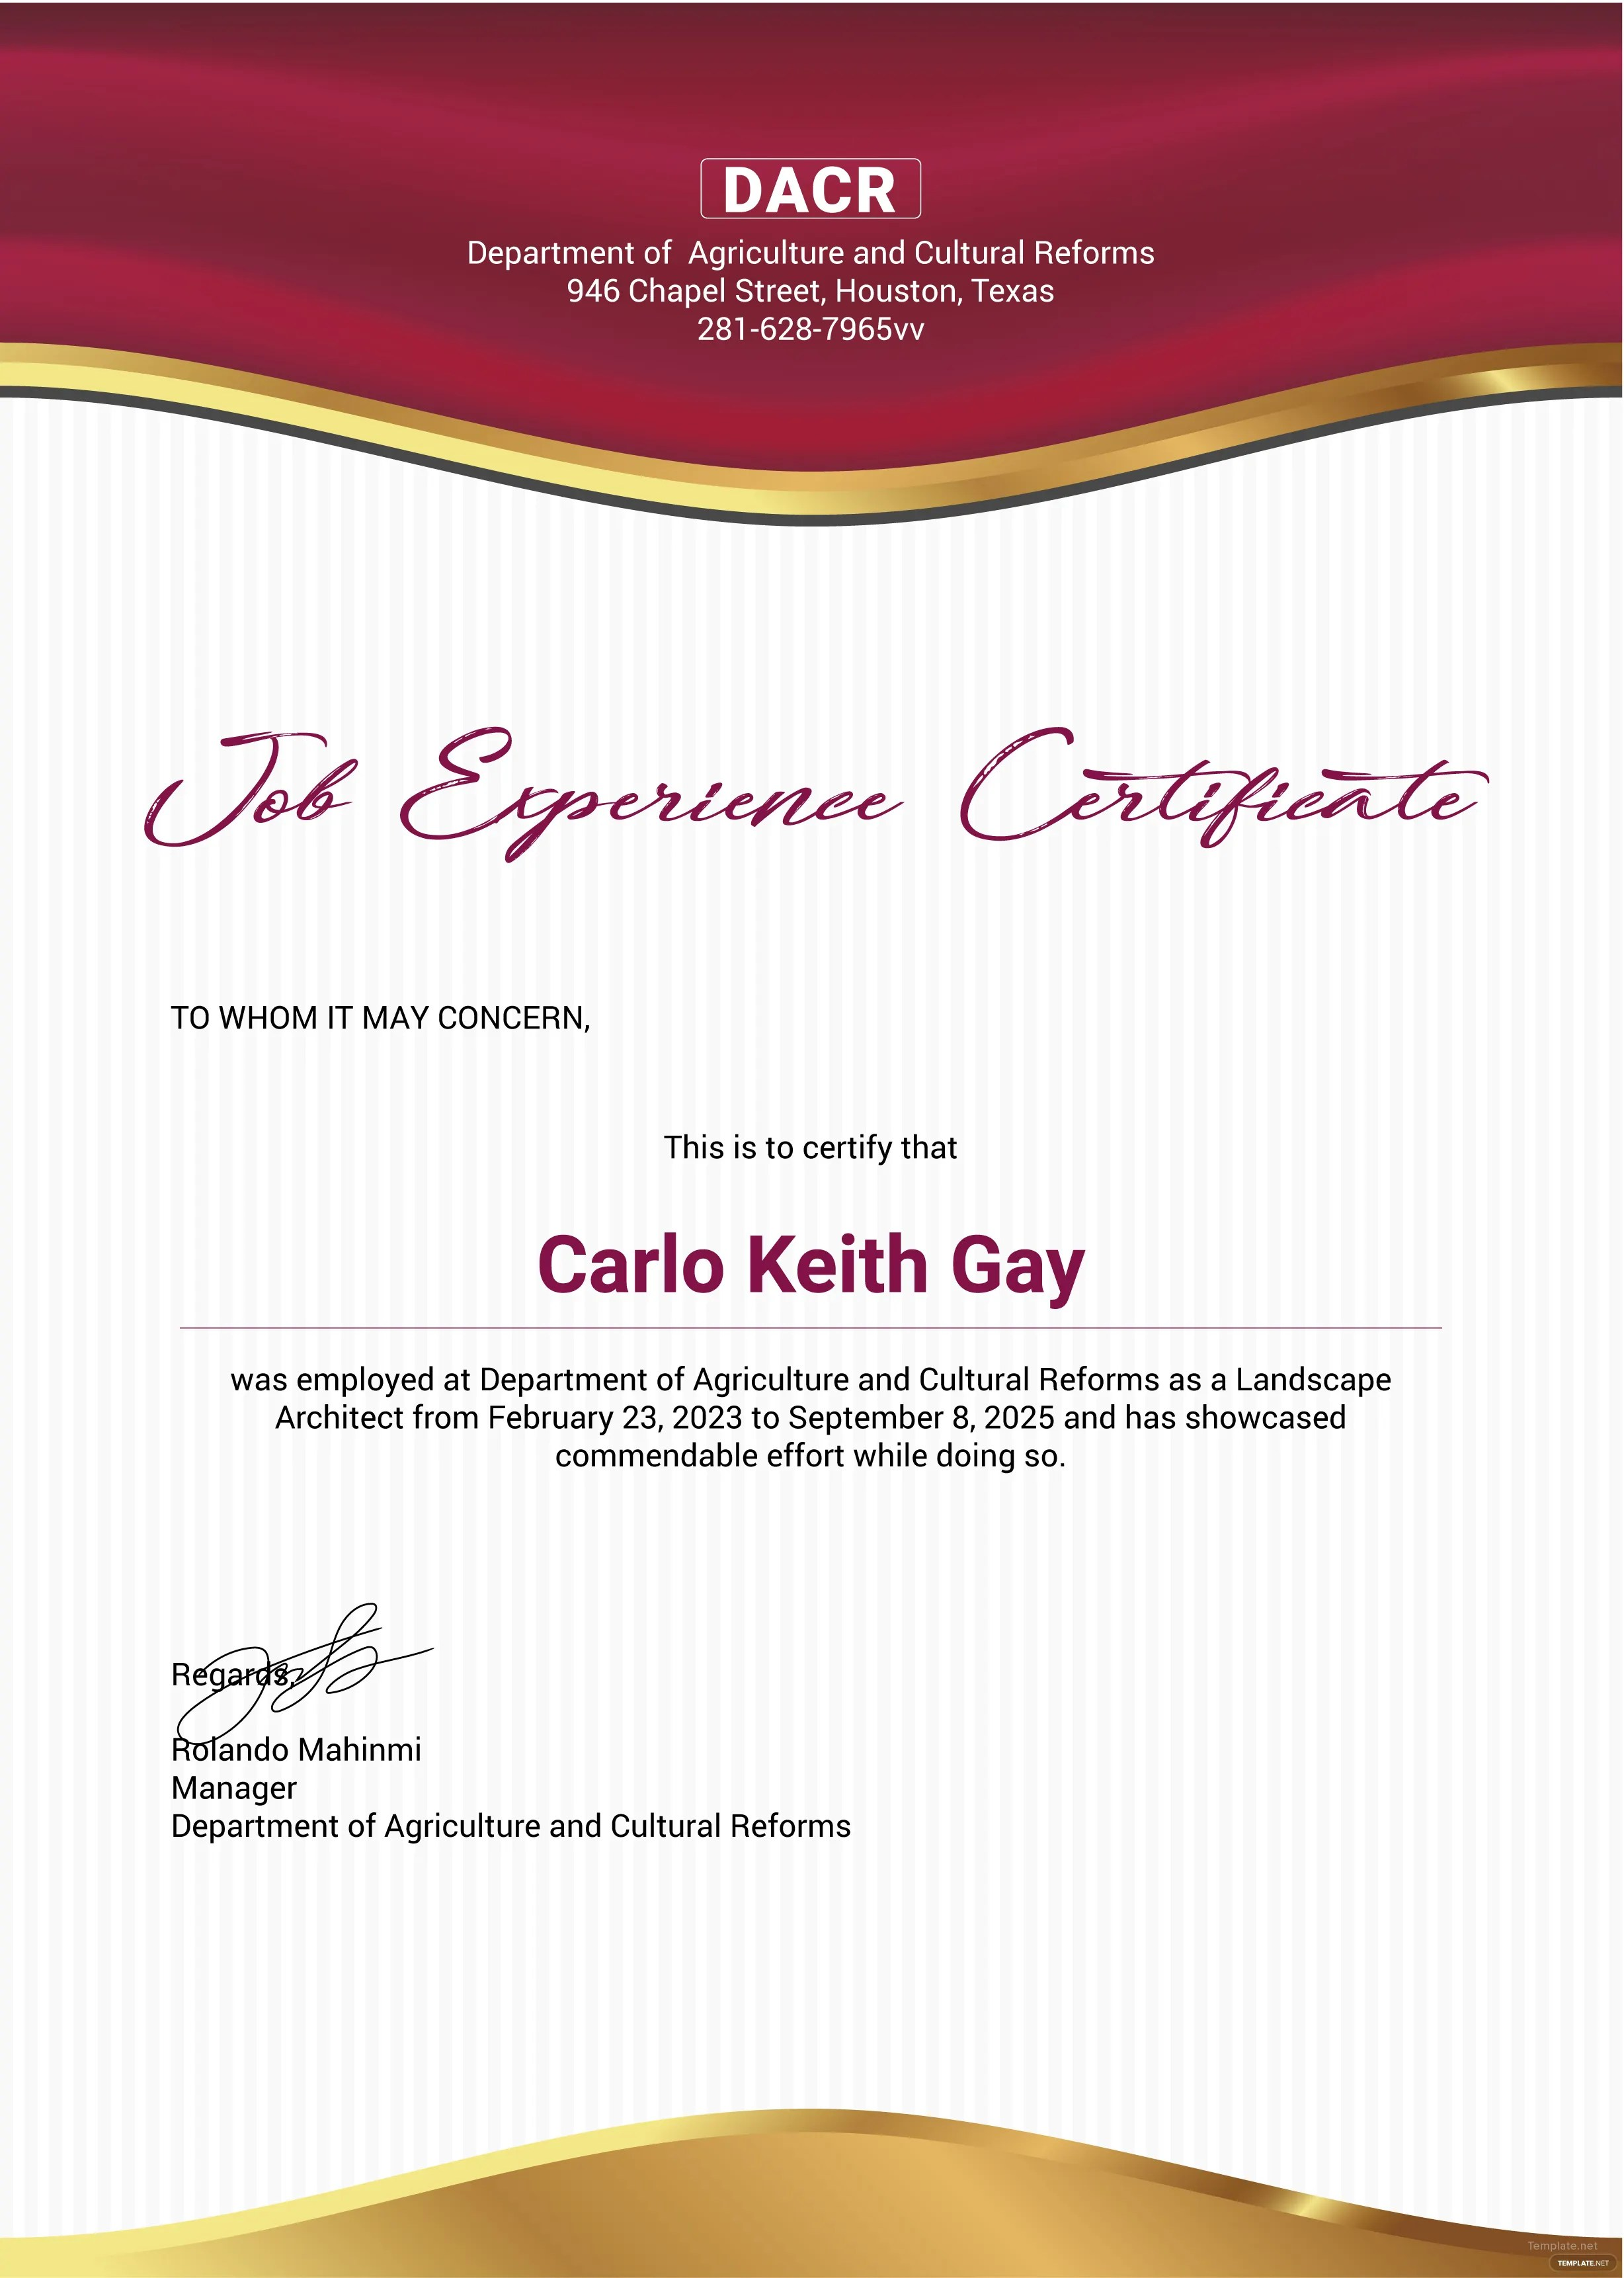 Free Job Experience Certificate Template In Adobe Photoshop Microsoft Word Microsoft Publisher